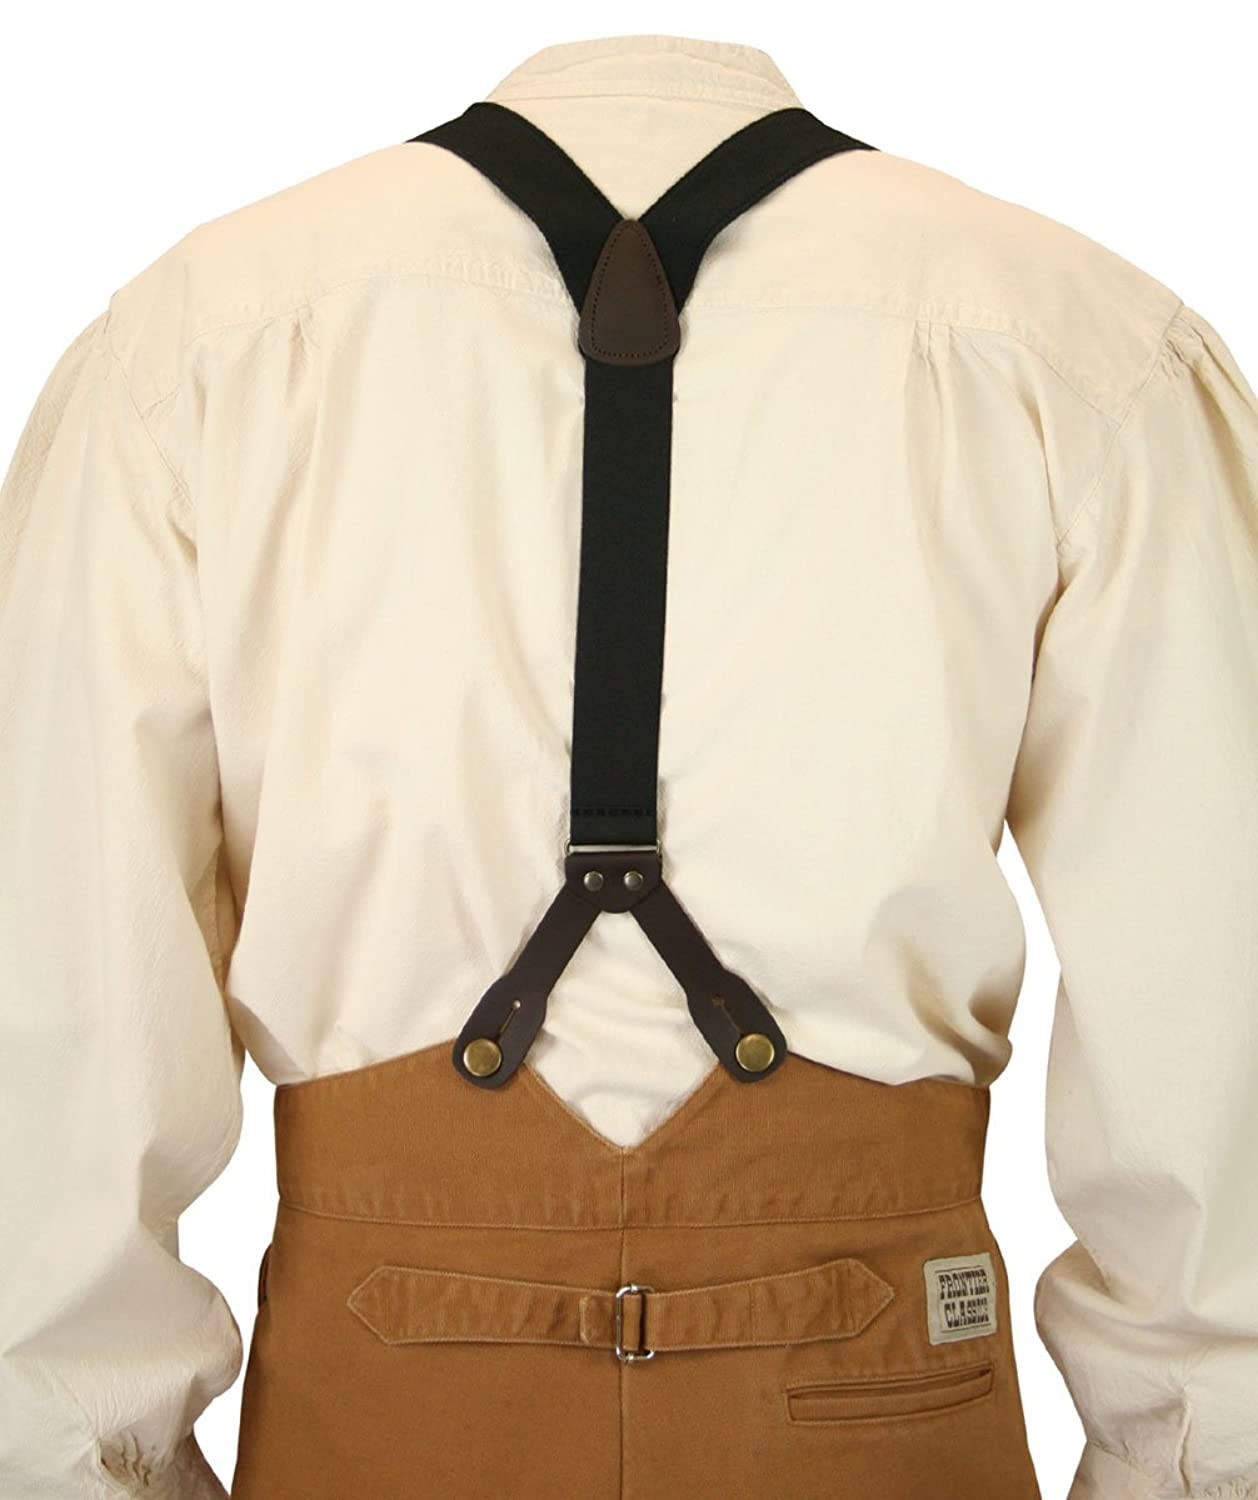 1920s Men's Clothing Historical Emporium Mens Canvas Stagecoach Y-Back Suspenders $27.95 AT vintagedancer.com